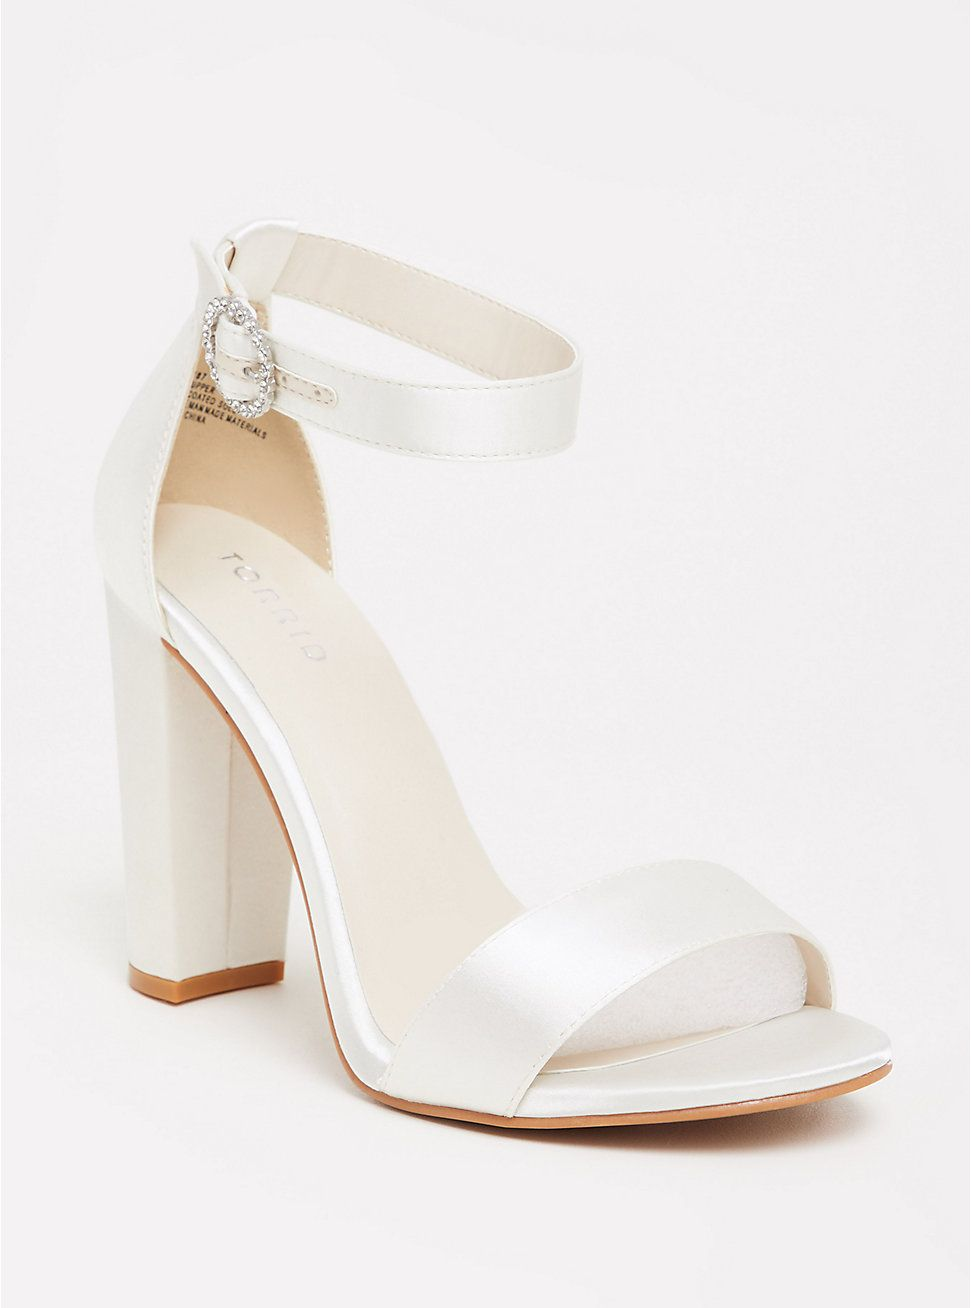 Staci - Ivory Satin Ankle Strap Tapered Heel (WW)